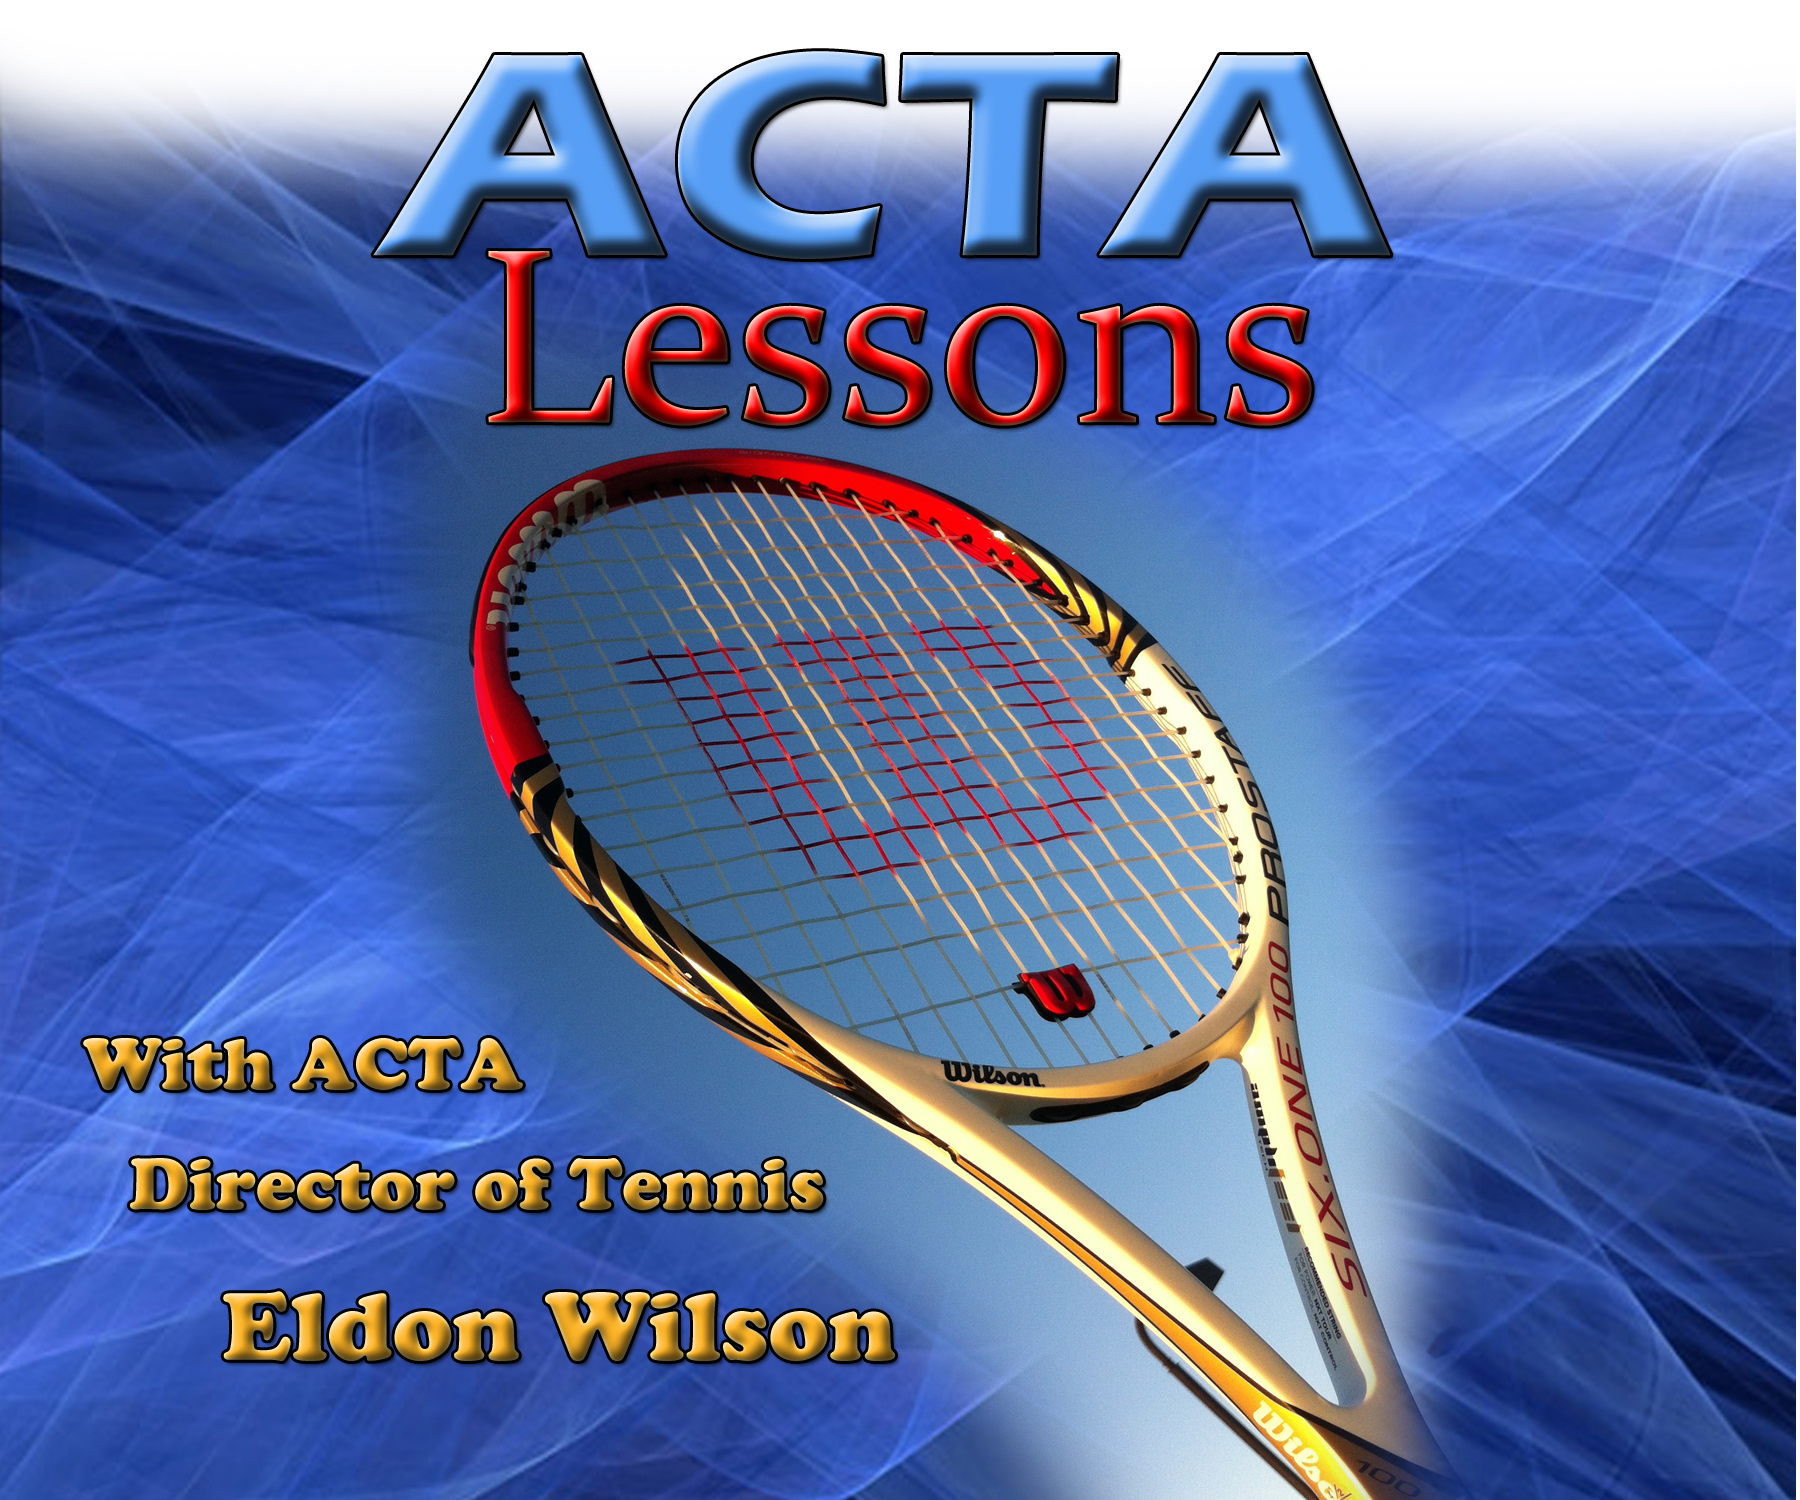 2015 ACTA April Adult Clinic - Thu 6:30 to 7:30